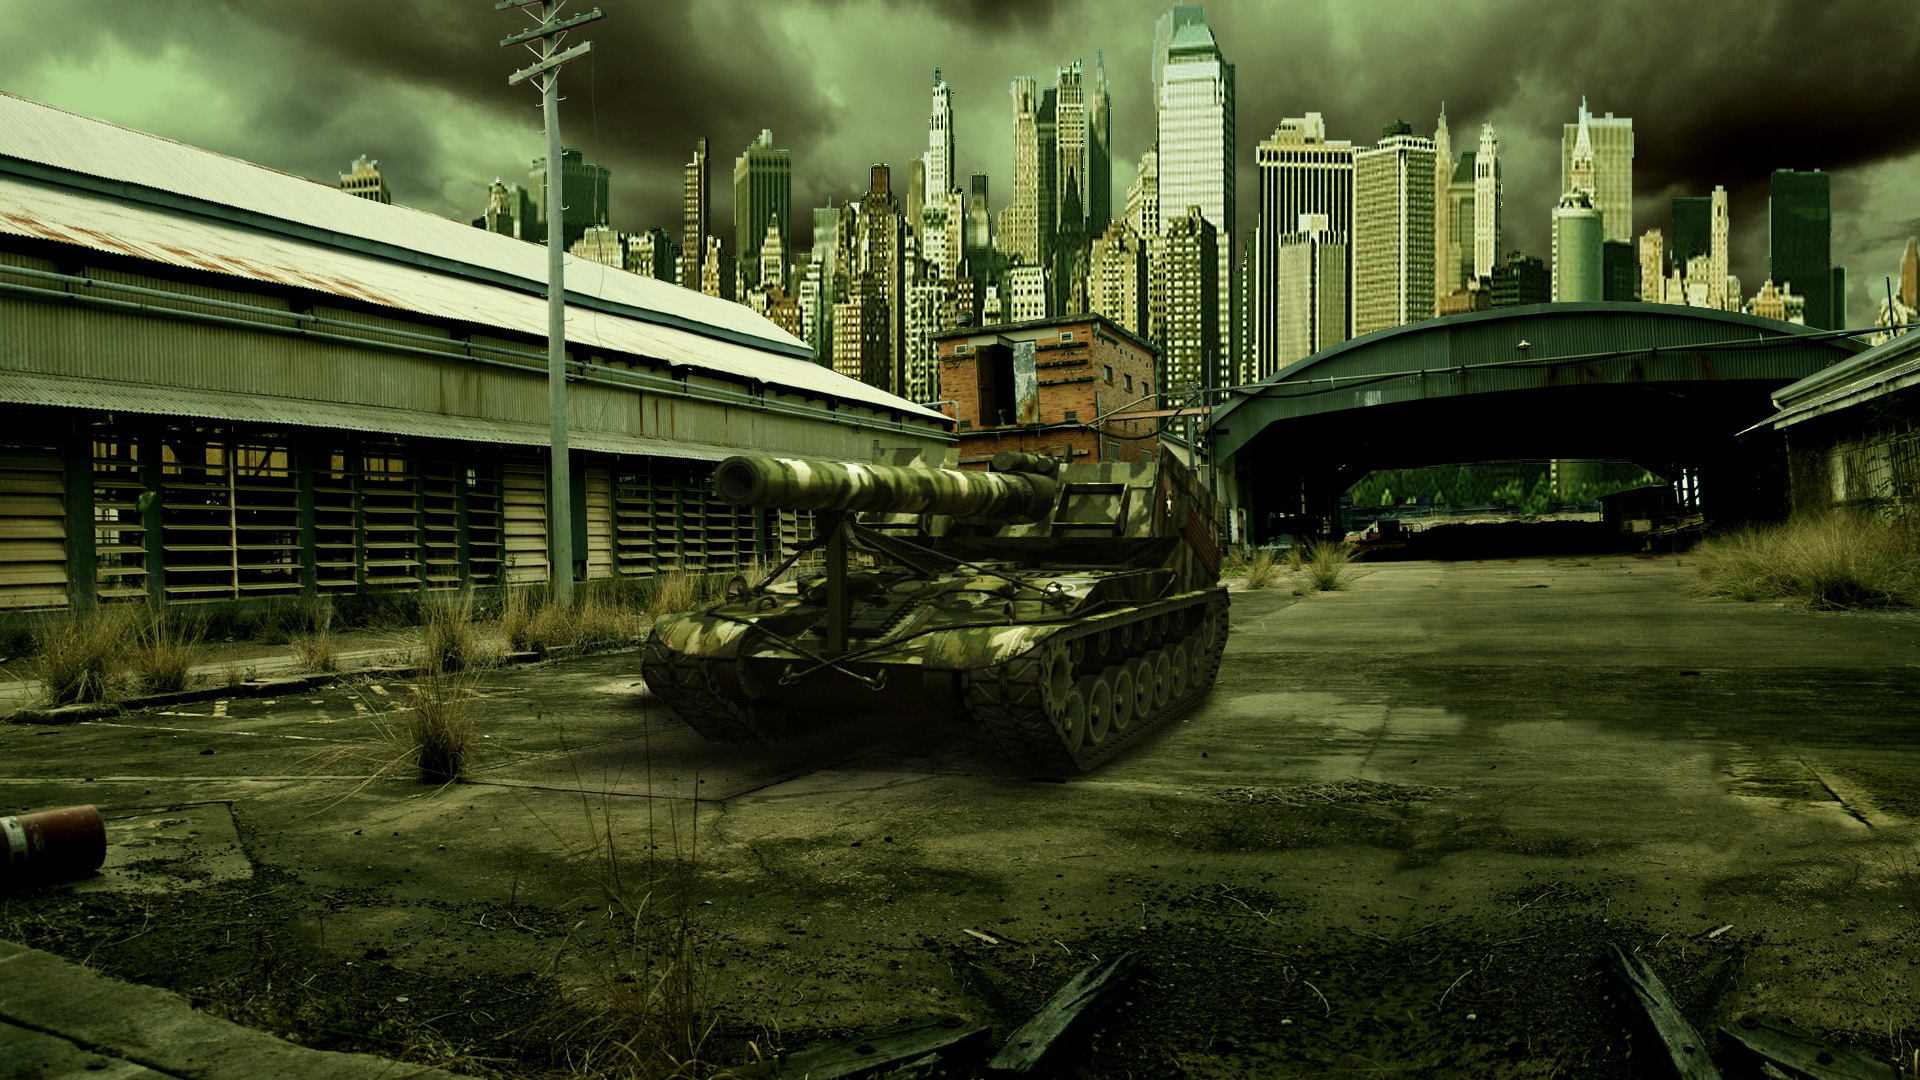 World of Tanks SPG T92 Games Cities military wallpaper 1920x1080 1920x1080